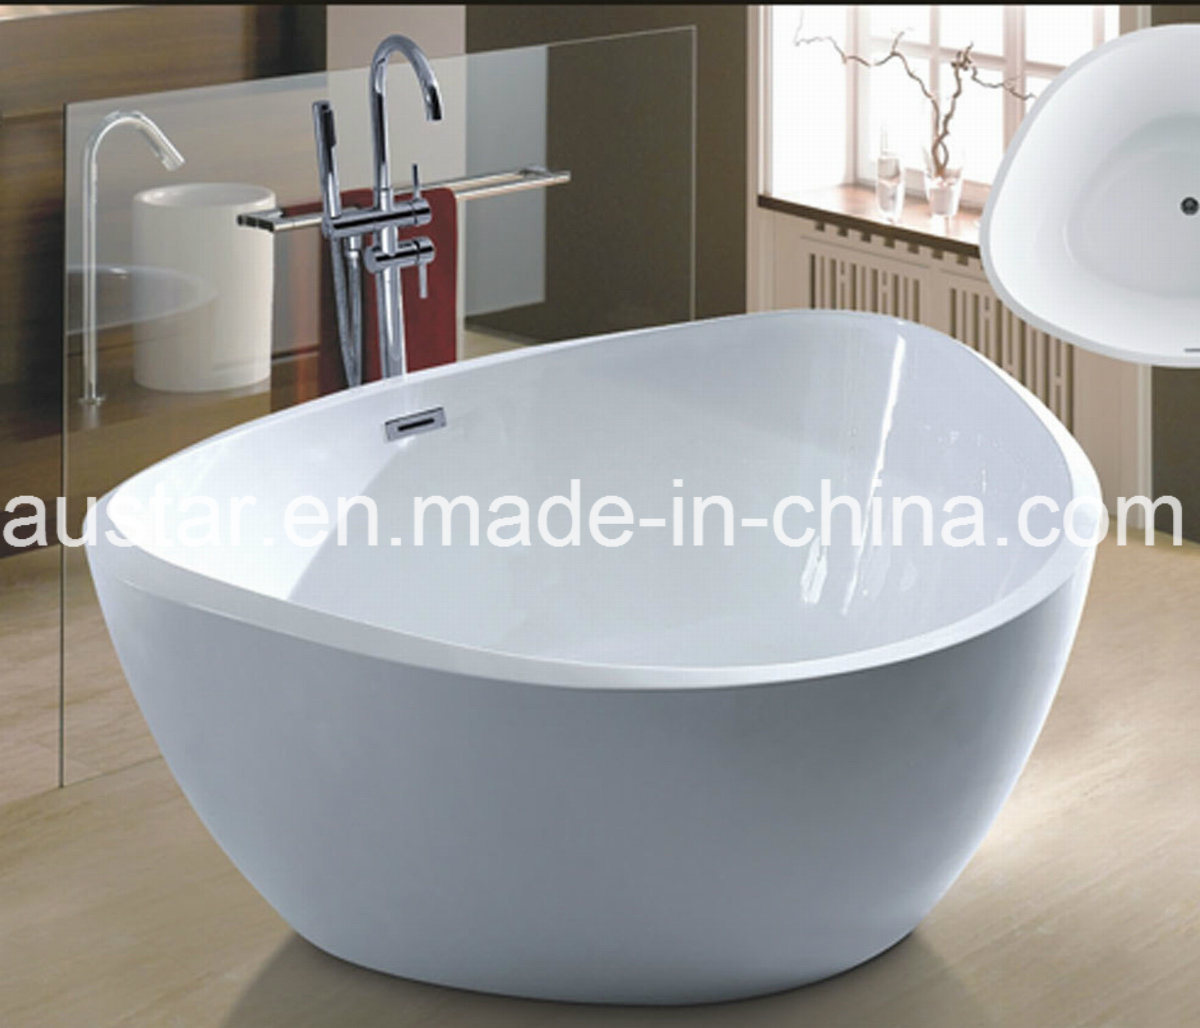 New Triangle Freestanding Bathtub SPA for Villa (AT-6020)